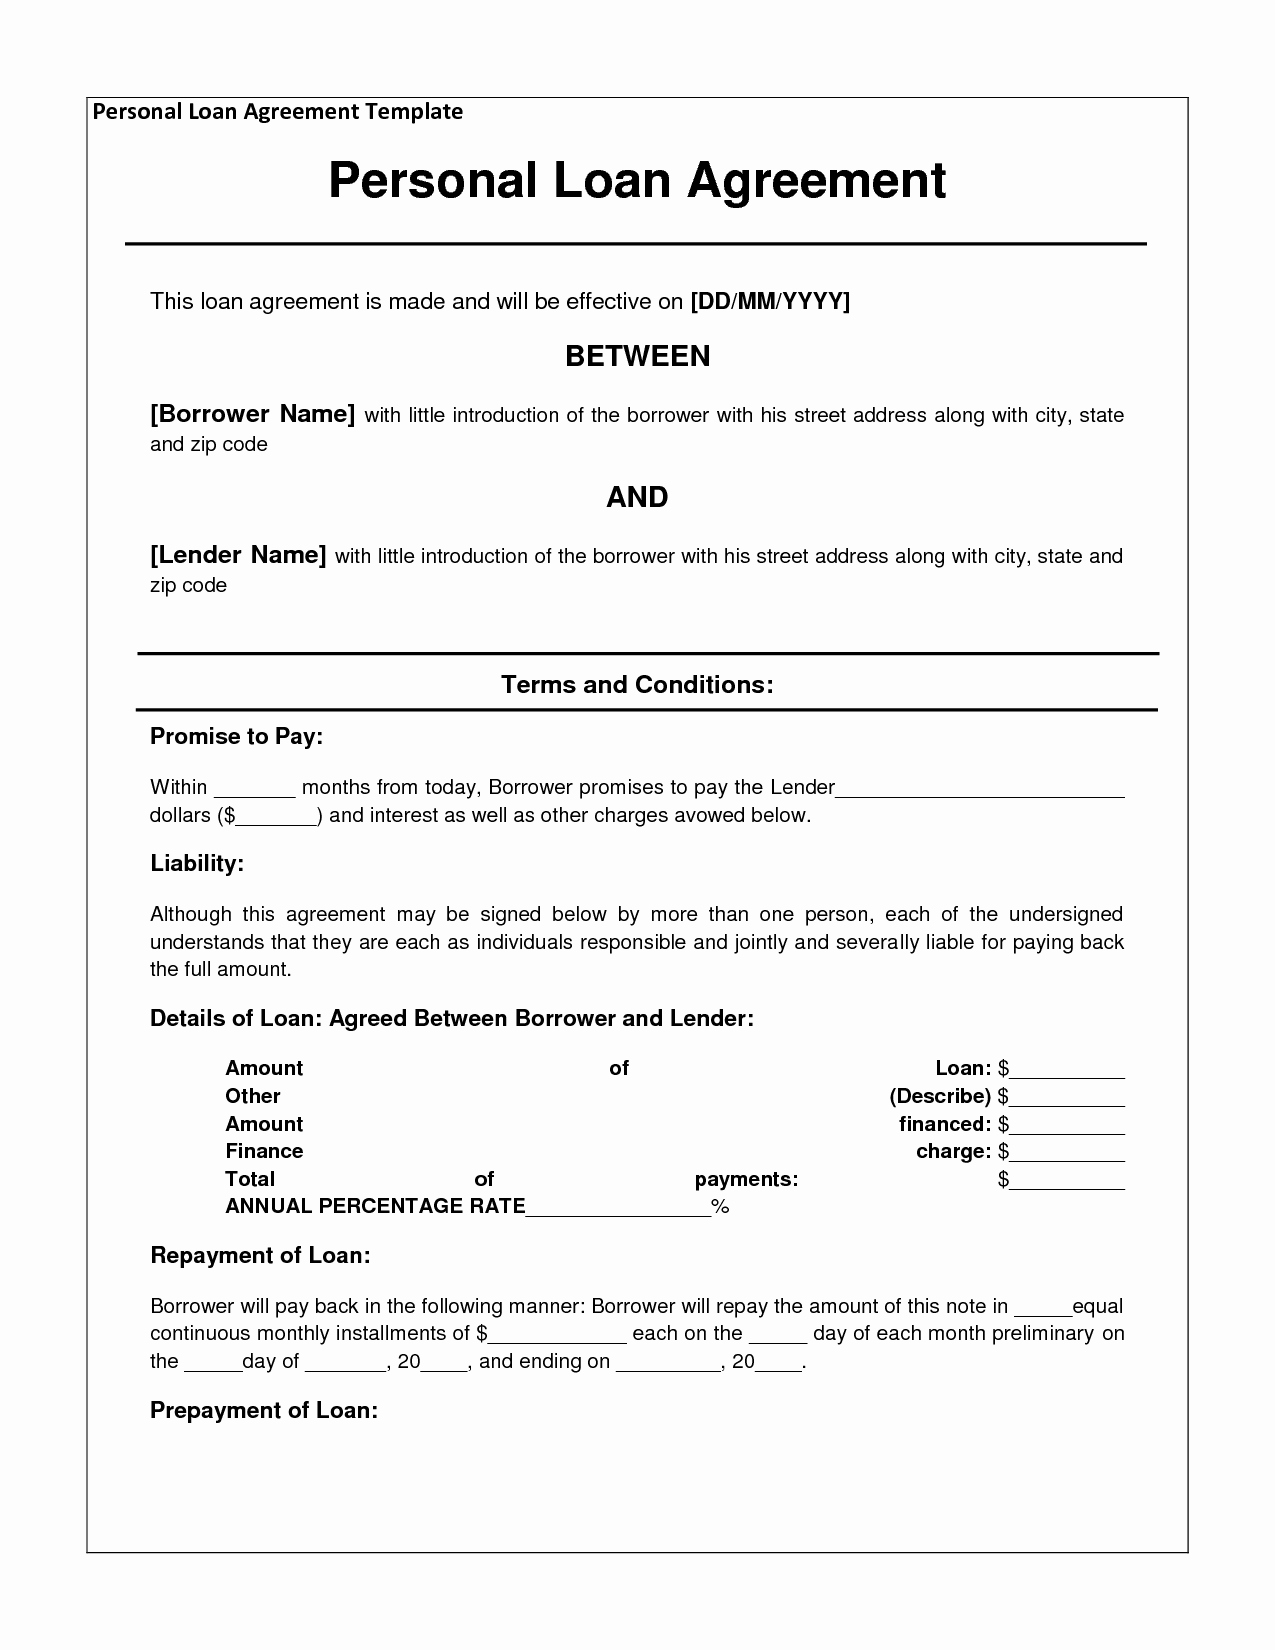 Personal Loan forms Template Inspirational 14 Loan Agreement Templates Excel Pdf formats